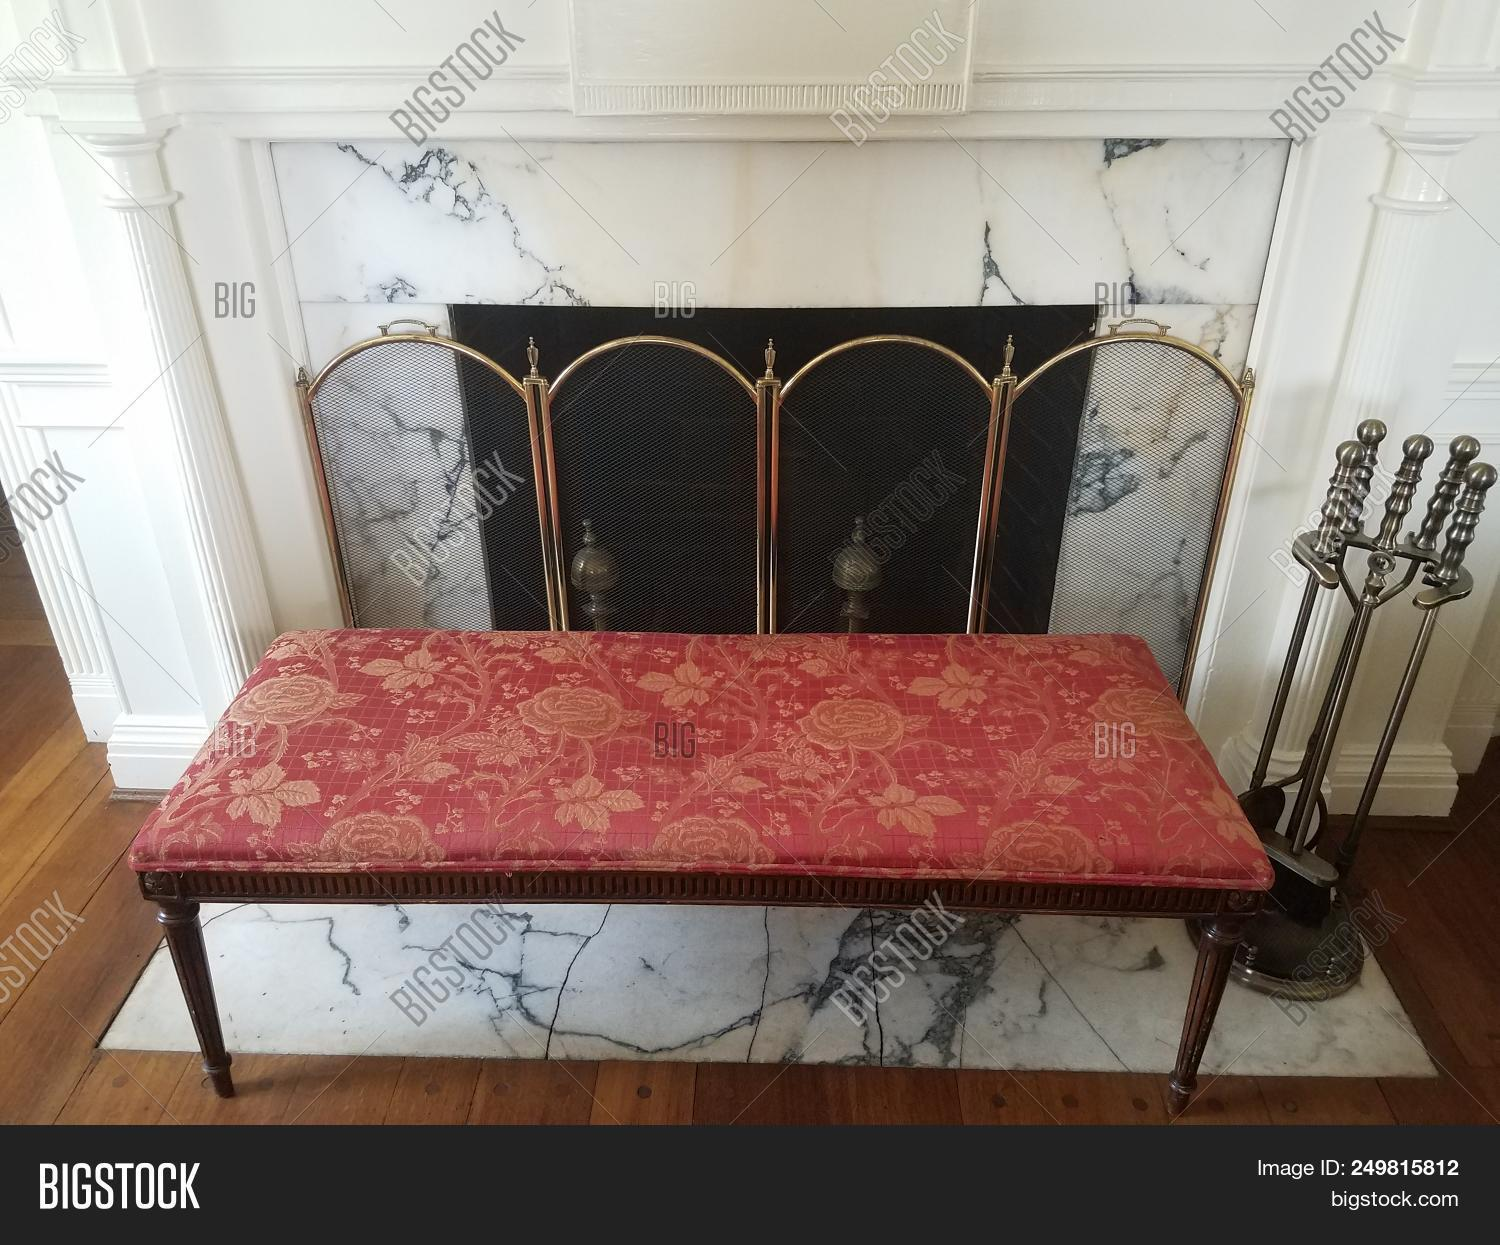 Fine Red Bench Seat Near Image Photo Free Trial Bigstock Gmtry Best Dining Table And Chair Ideas Images Gmtryco